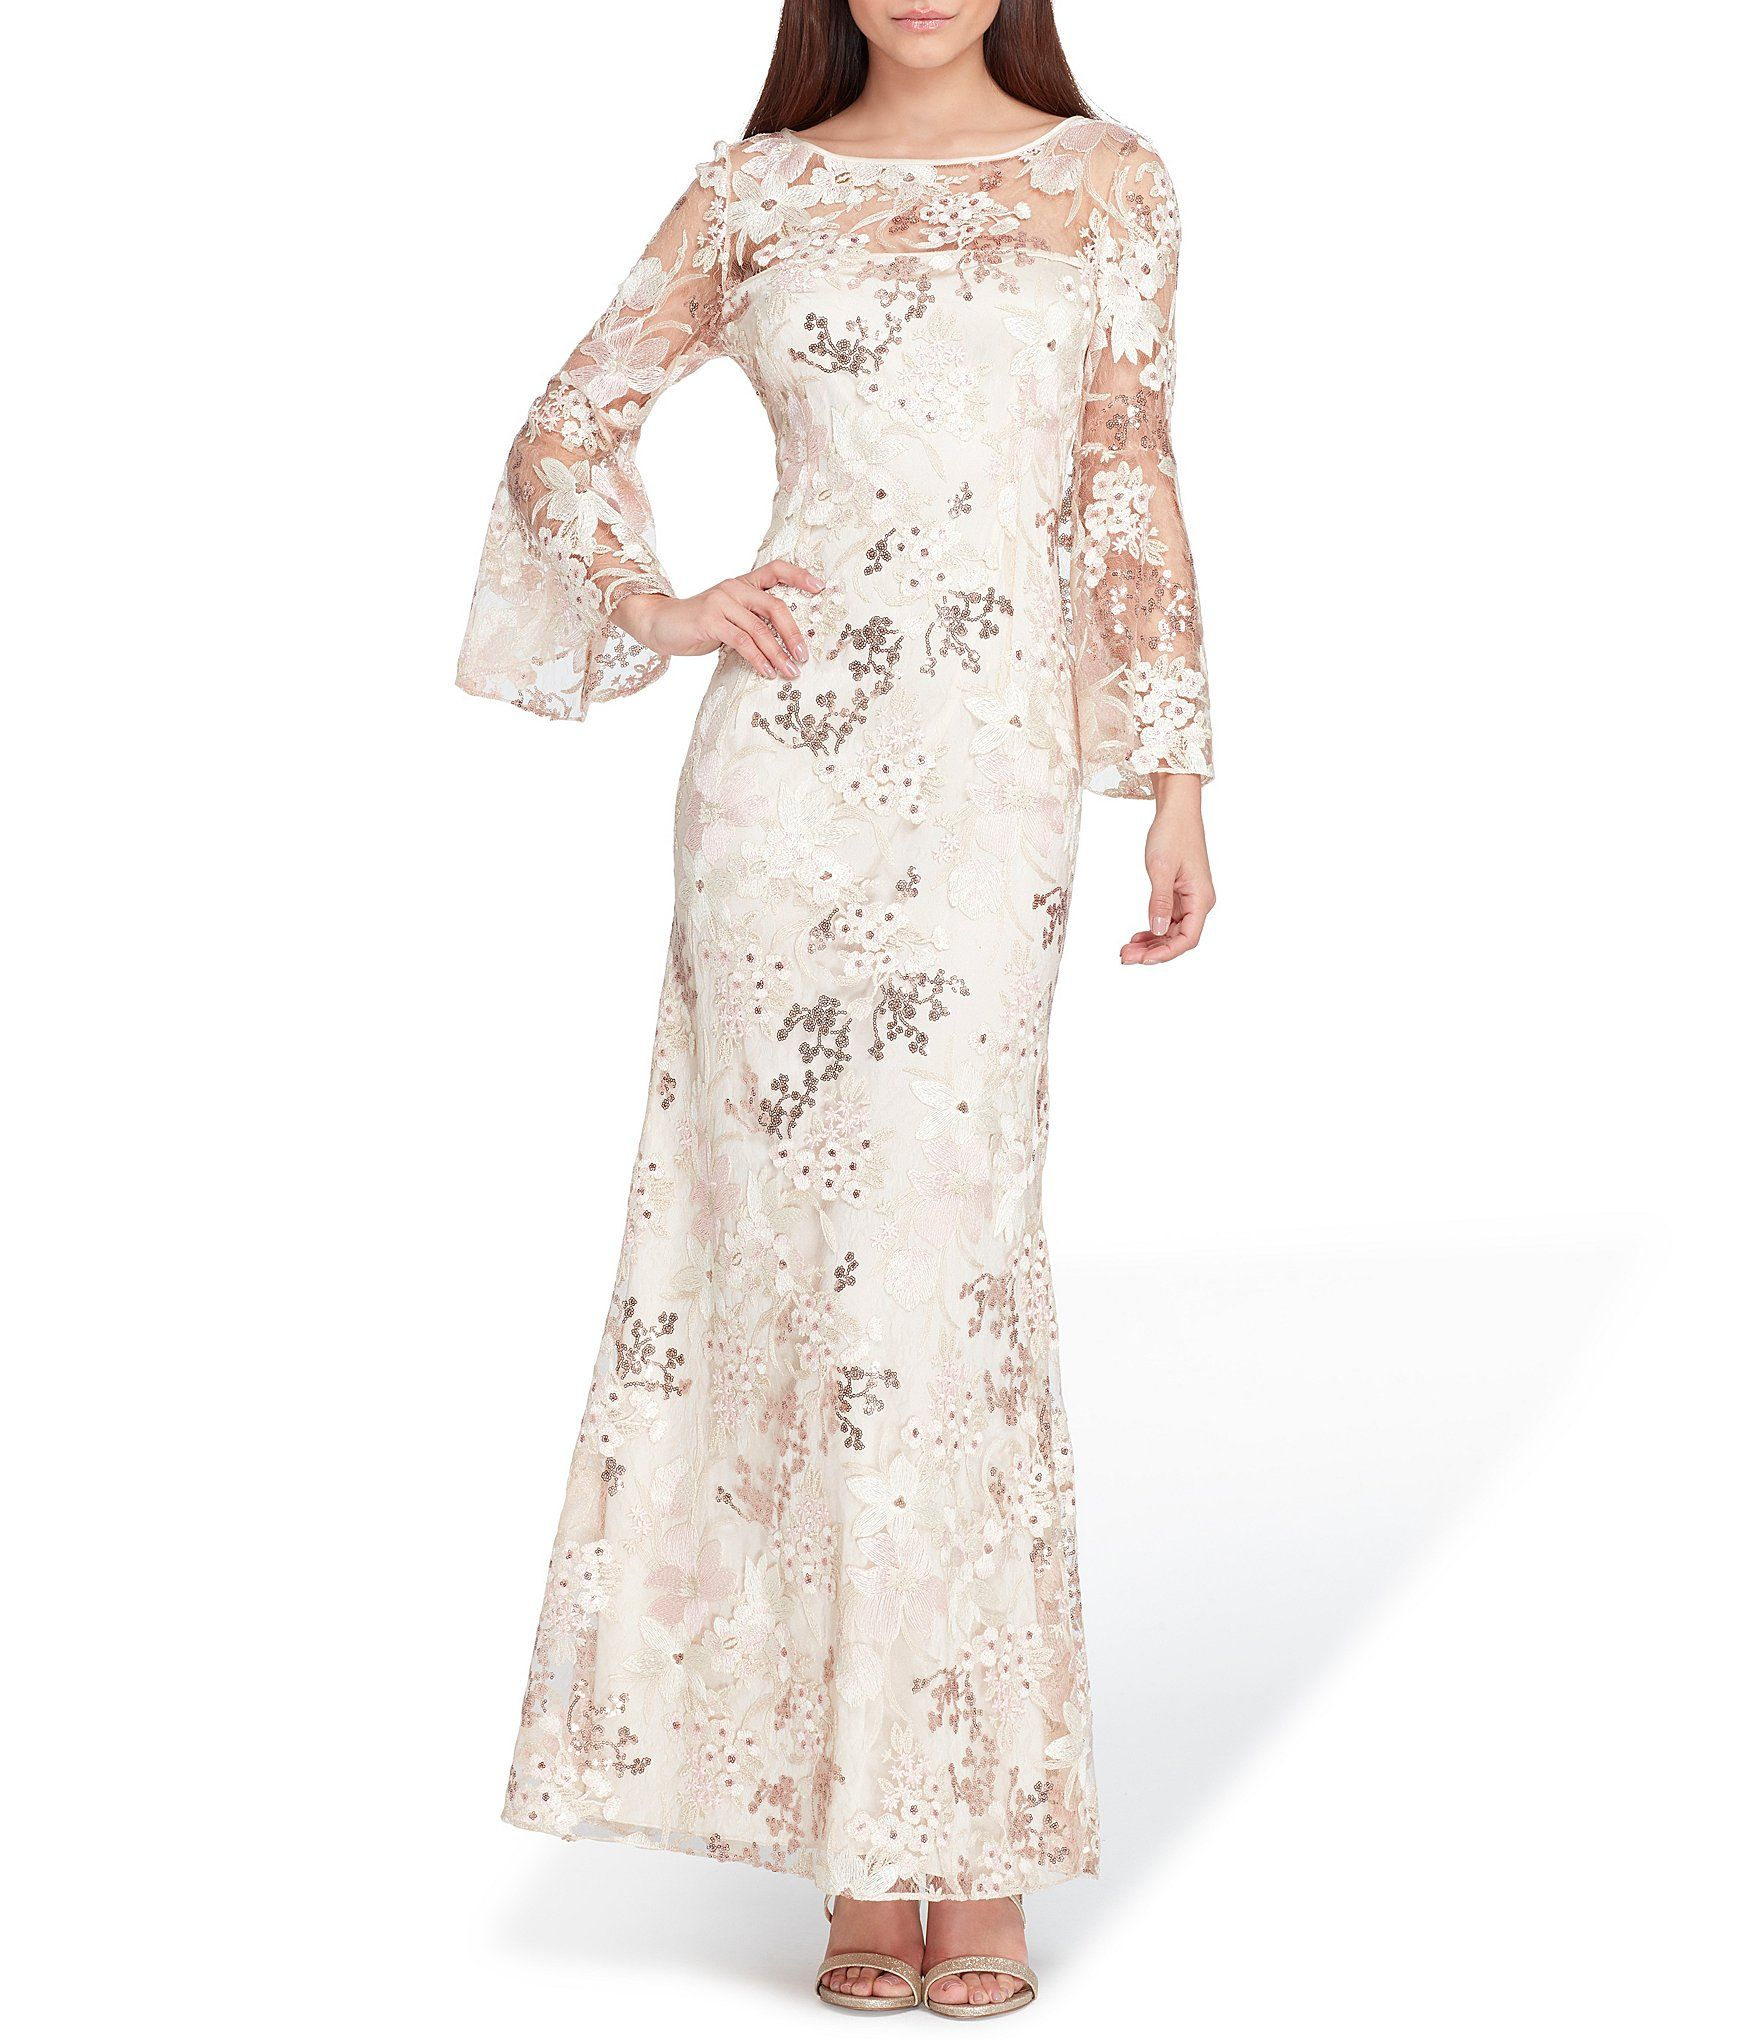 Tahari Asl Embroidered Novelty Gown Dillards Clearance Dresses Mother Of The Bride Dresses Dresses [ 2040 x 1760 Pixel ]